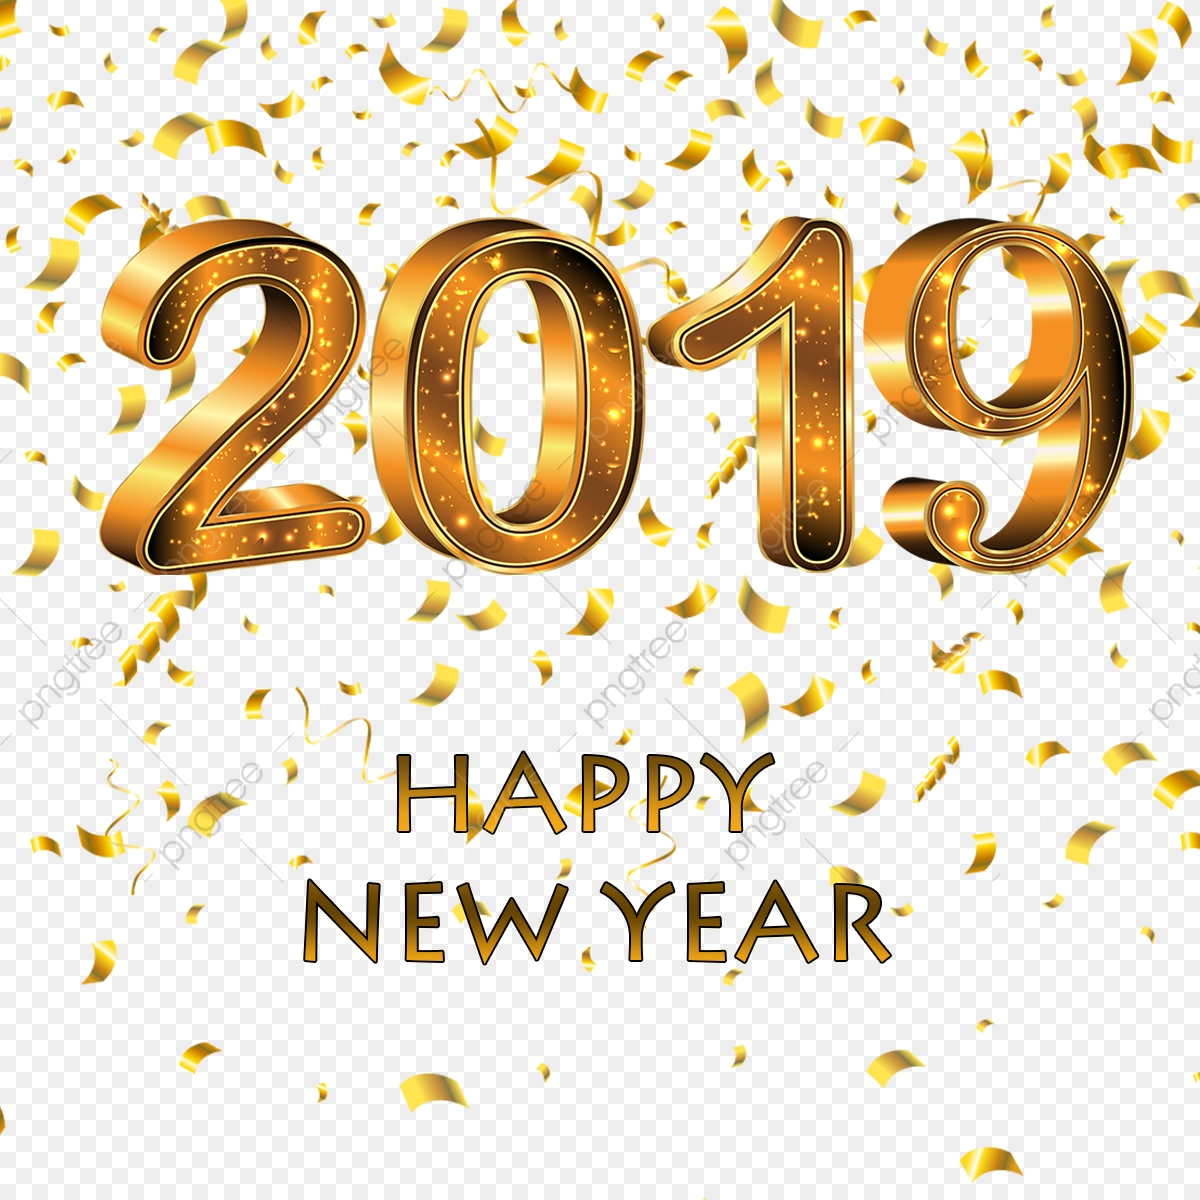 Happy New Year 2019 Golden Pictures Happy New Year Png Transparent Clipart Image And Psd File For Free Download Happy new year 2019 greeting card design with gift boxes and baubles illustration on glossy background for merry christmas festival celebration. https pngtree com freepng happy new year 2019 golden pictures 3668995 html